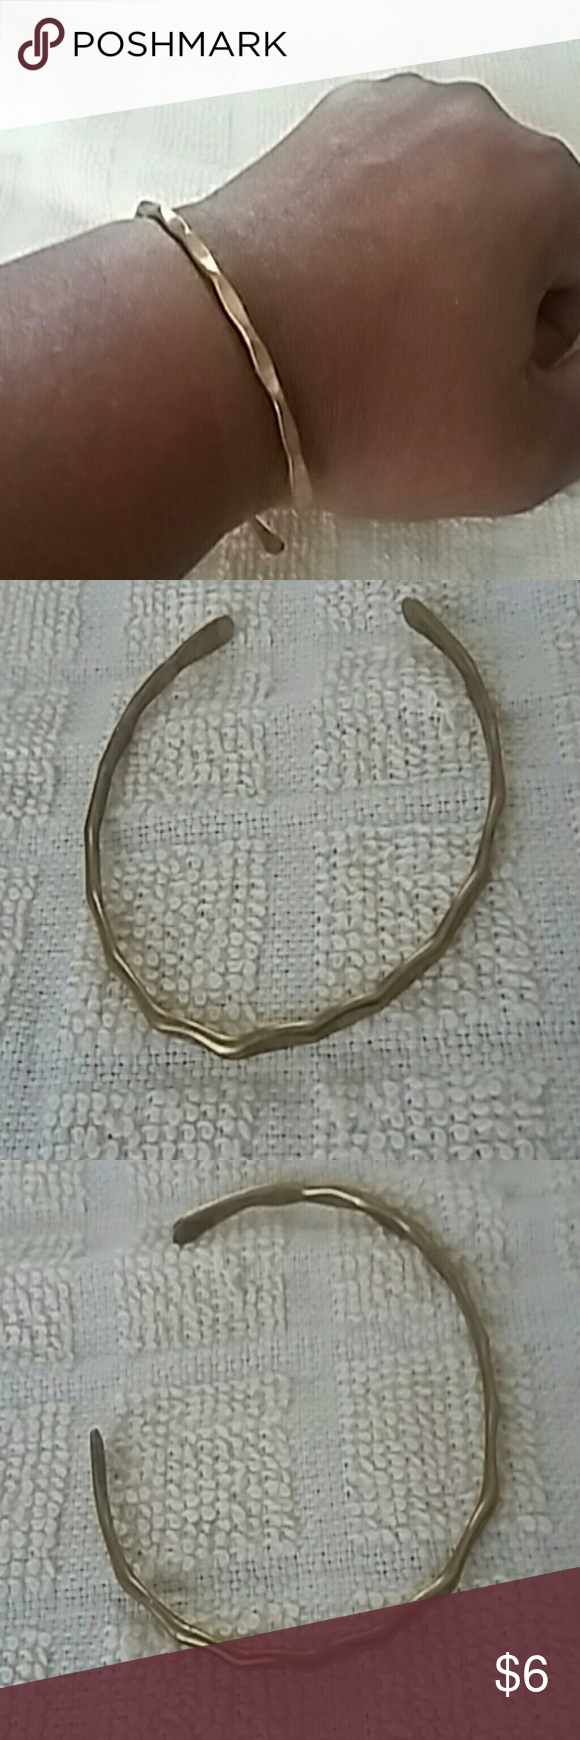 Hammered brass bangle Dainty hammered brass bangle has wavy pattern. Very good vintage condition 1970s but classic boho style! Jewelry Bracelets